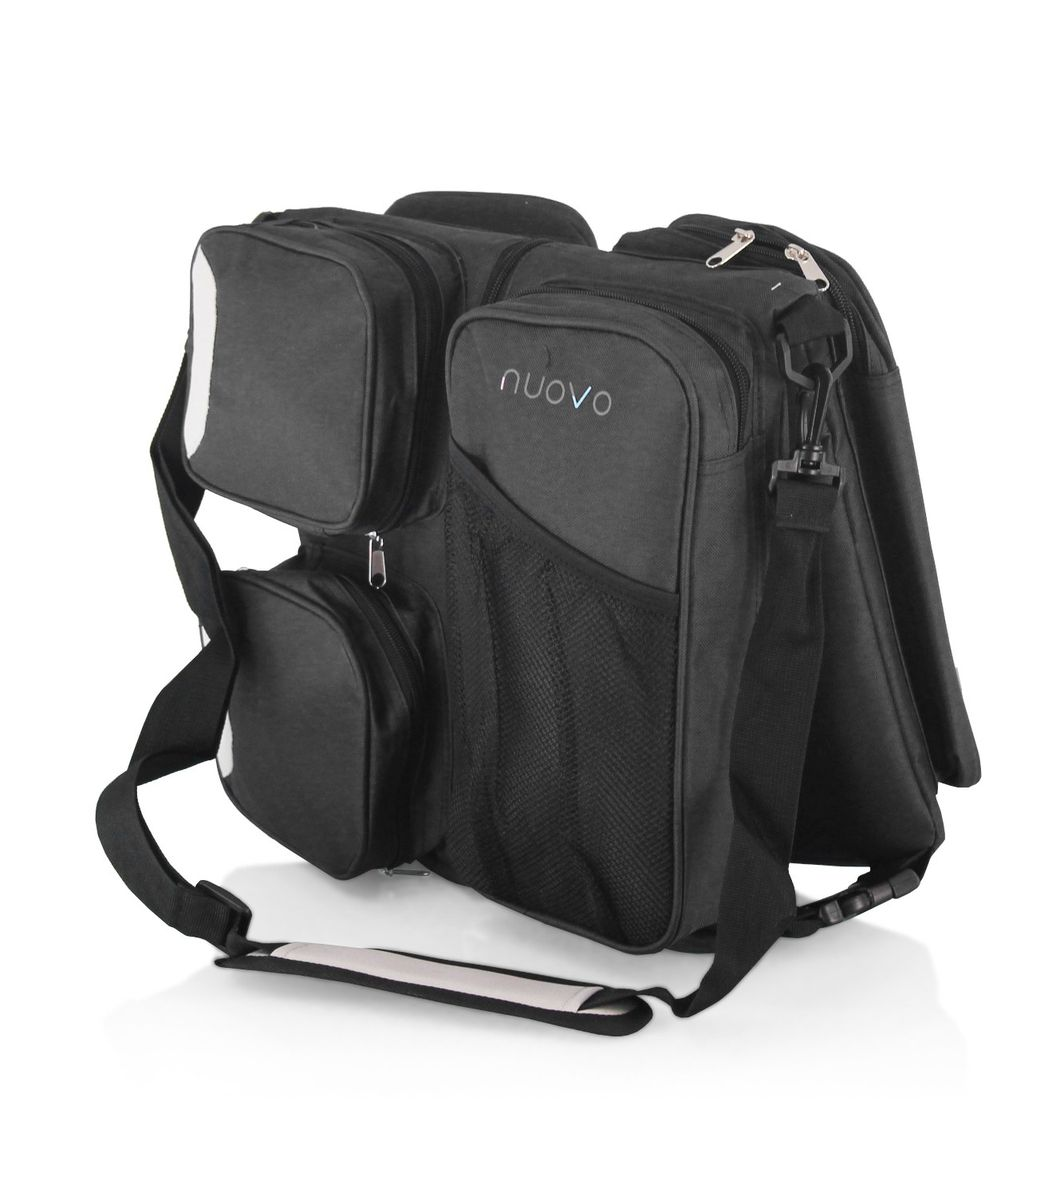 nuovo baby 3 in 1 carry and nappy bag black buy online in south africa. Black Bedroom Furniture Sets. Home Design Ideas